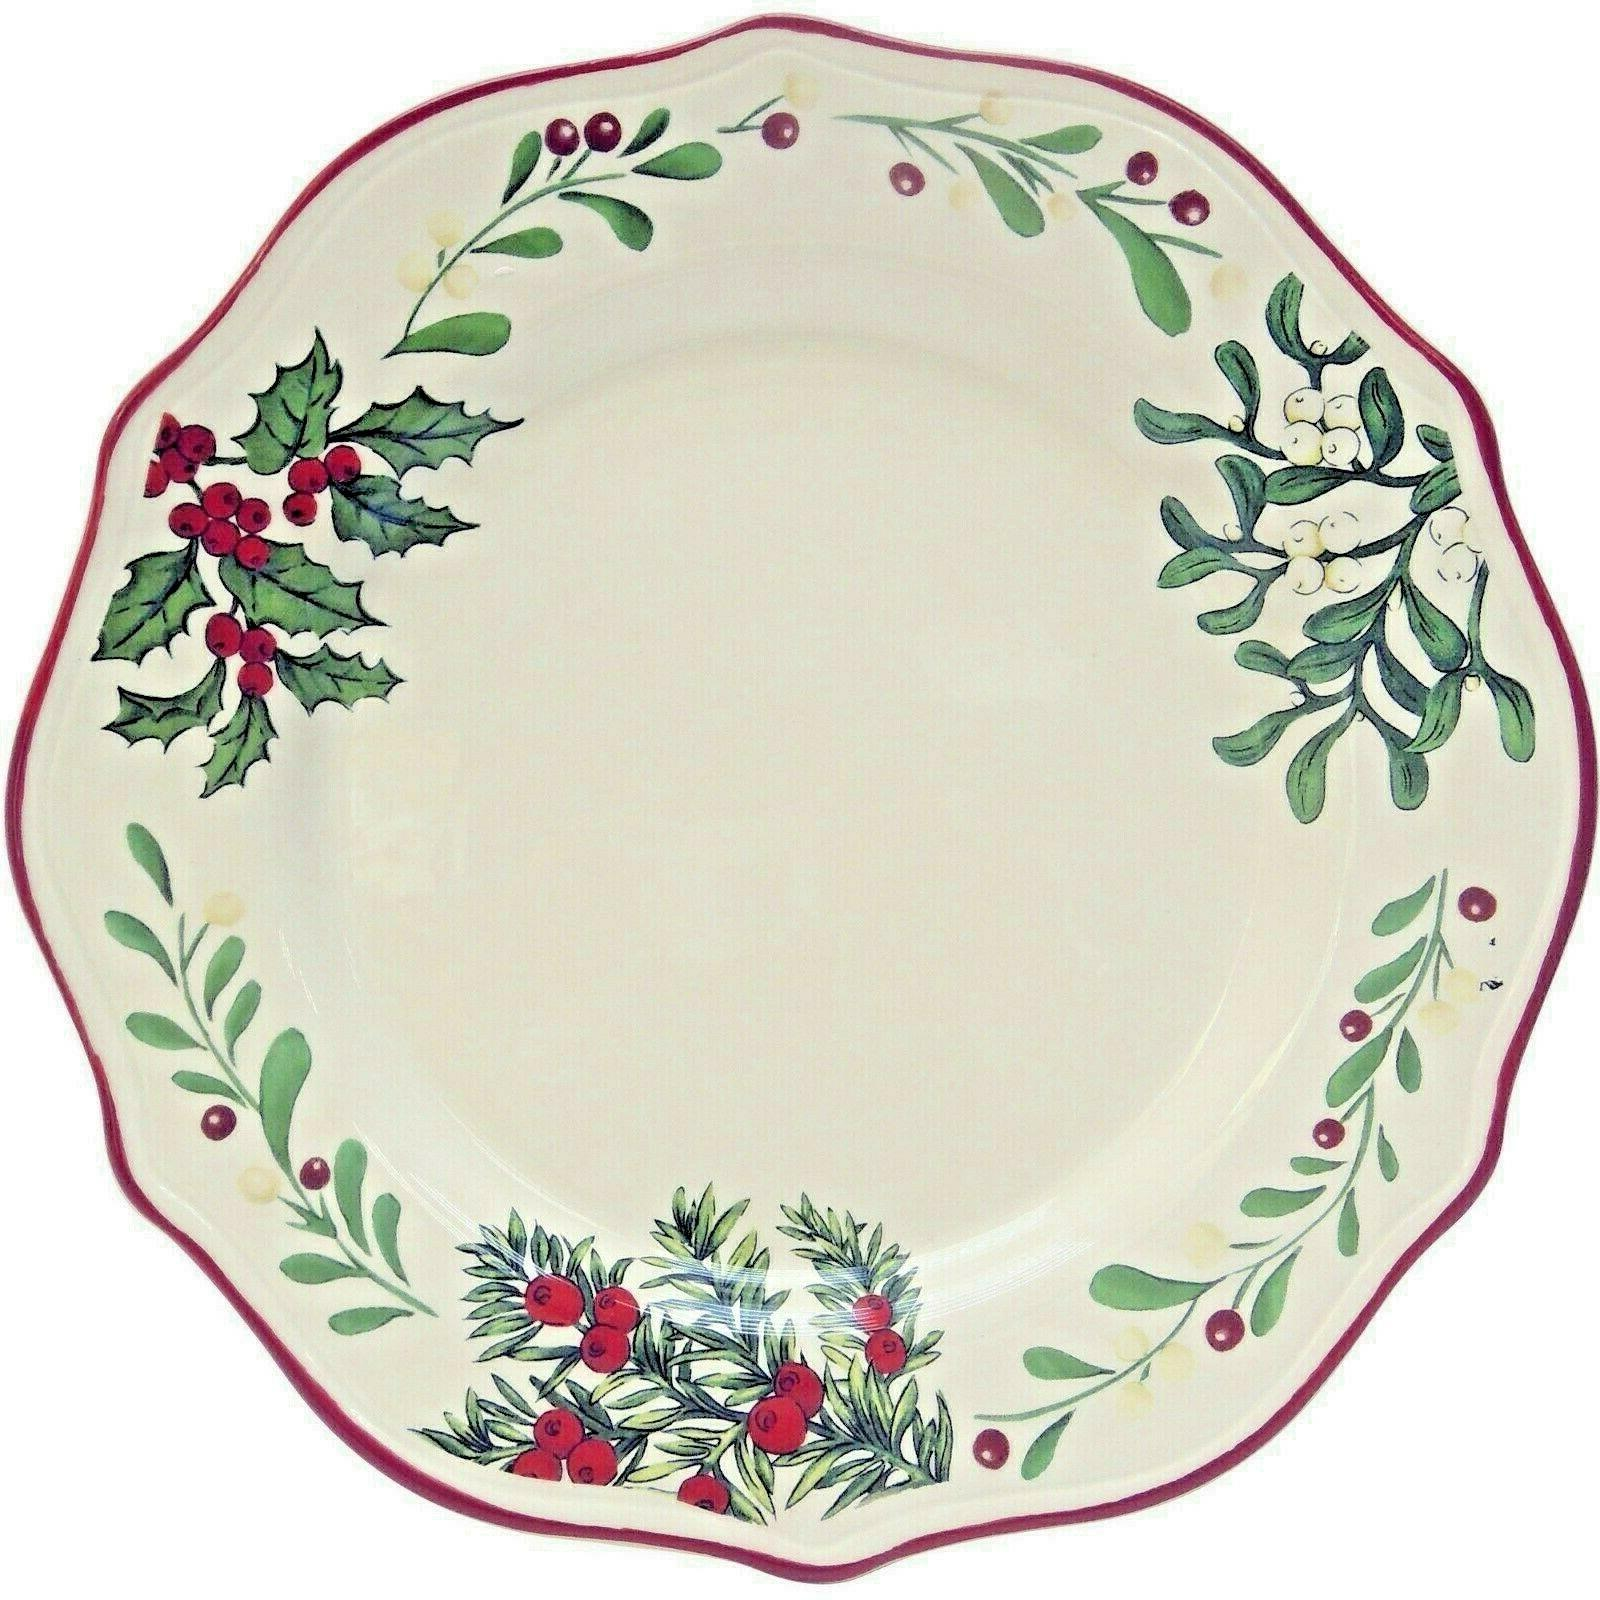 BETTER HOMES & HERITAGE 12 PIECE CHRISTMAS HOLIDAY